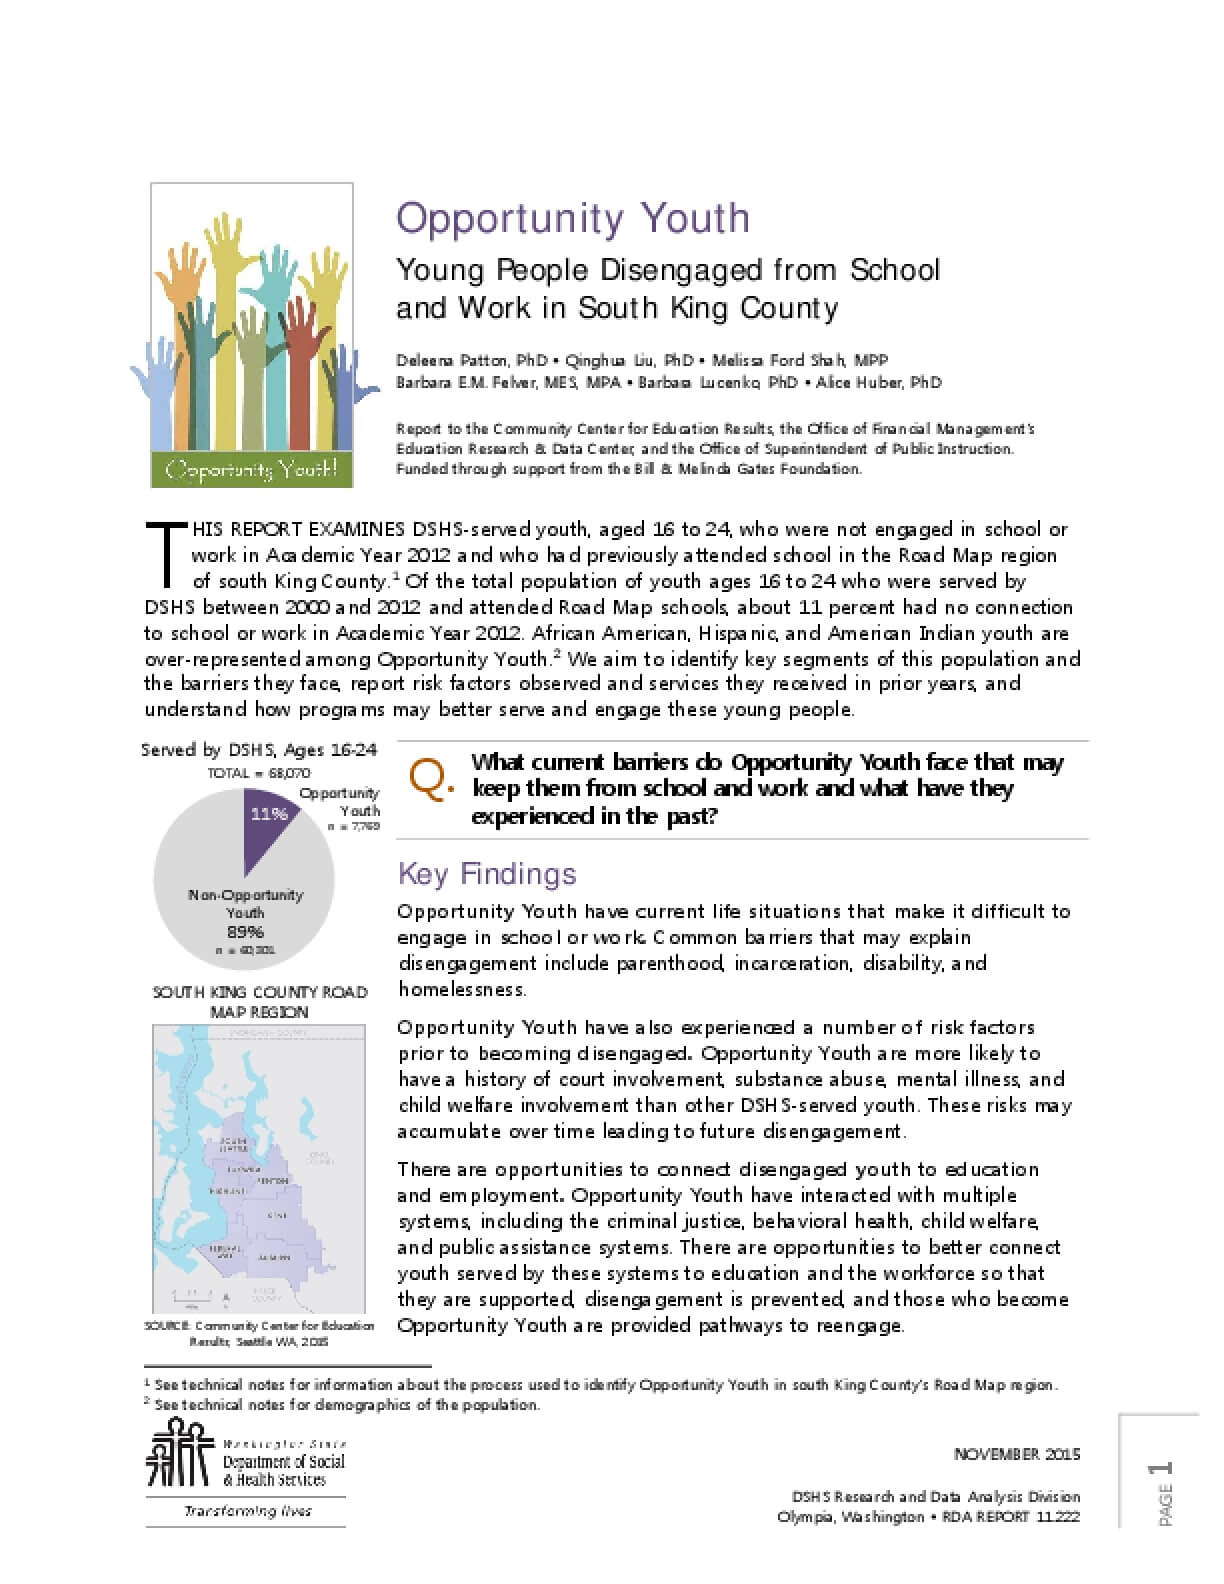 Opportunity Youth: Young People Disengaged from School and Work in South King County